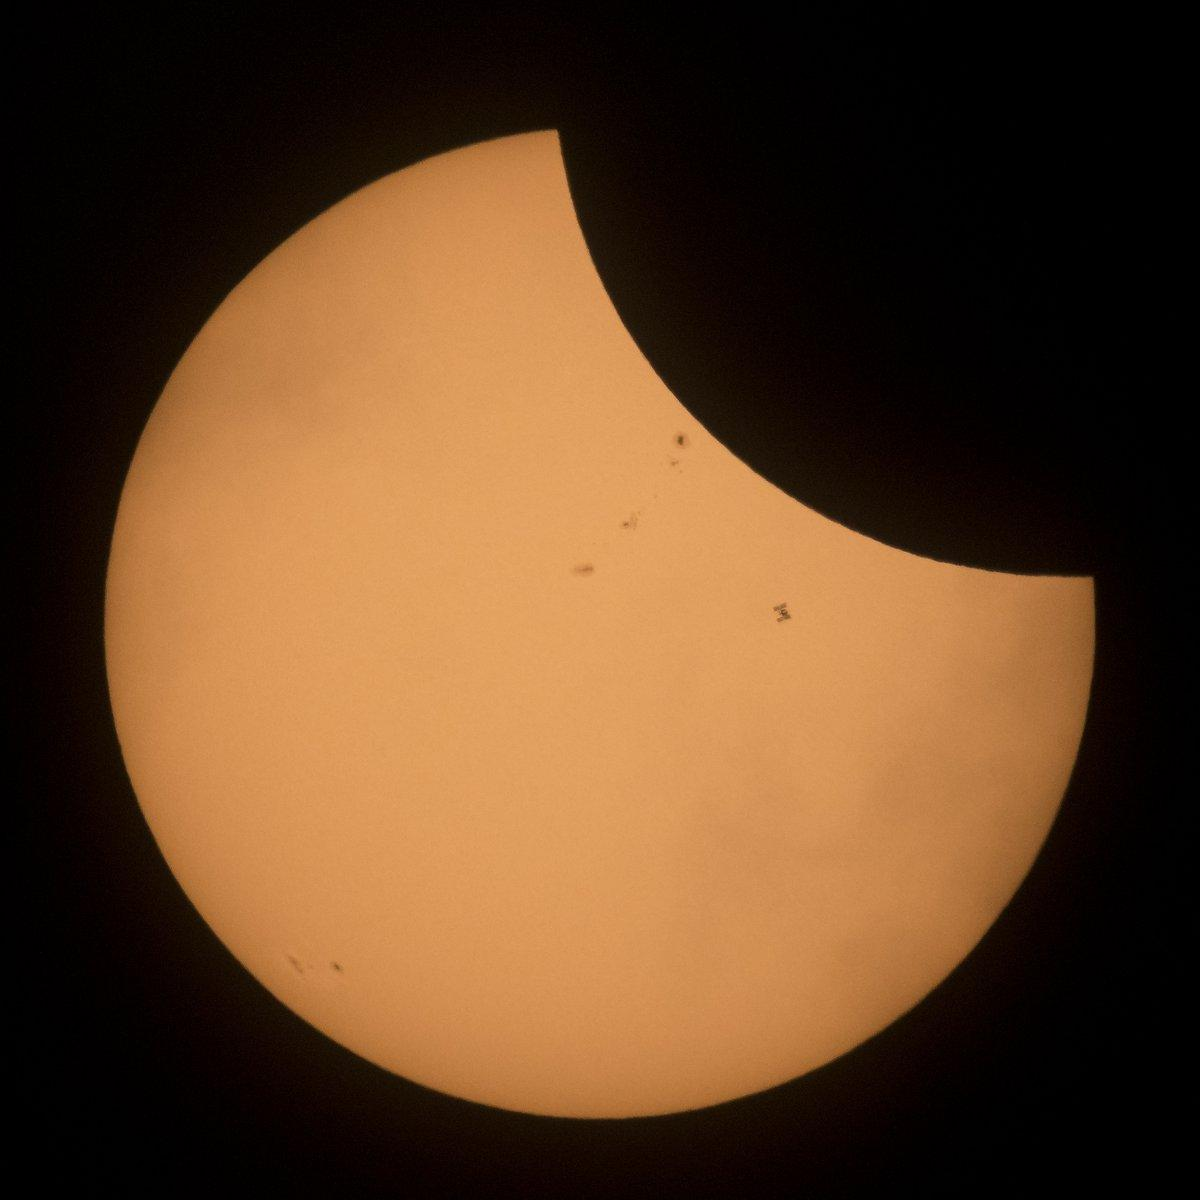 eclipse iss moon sun